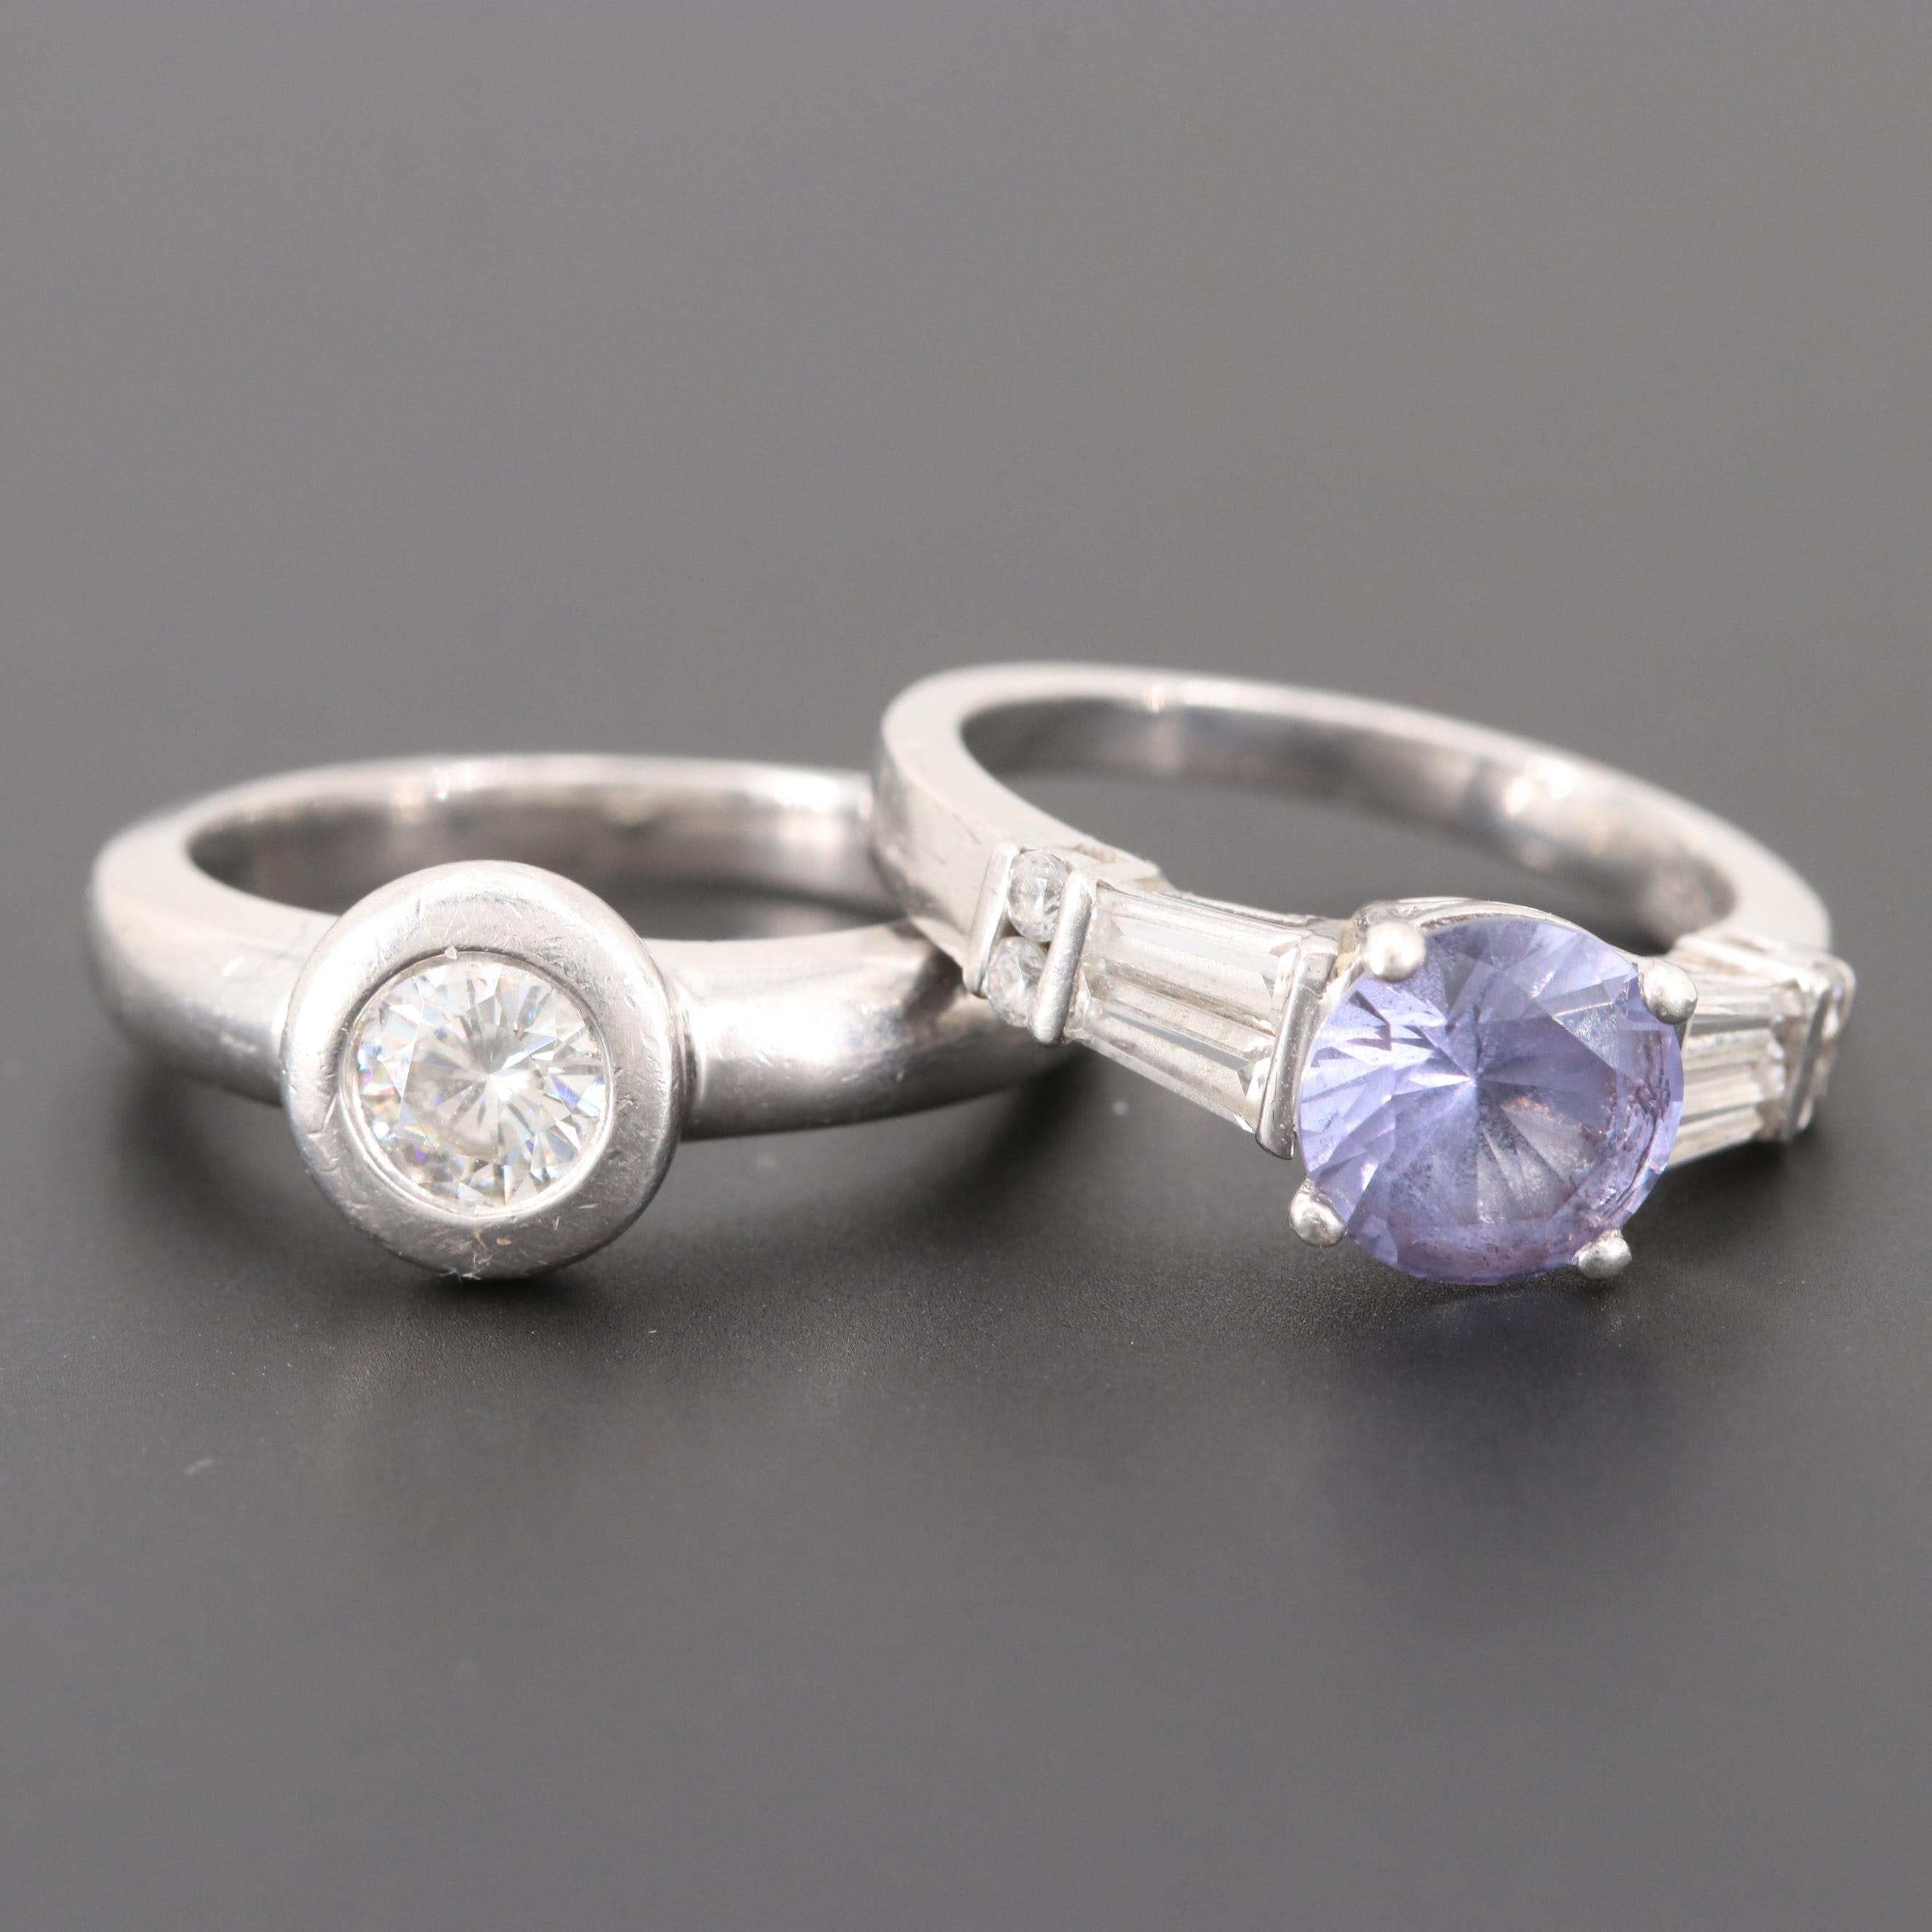 Sterling Silver Synthetic Color-Change Sapphire and Moissanite Rings